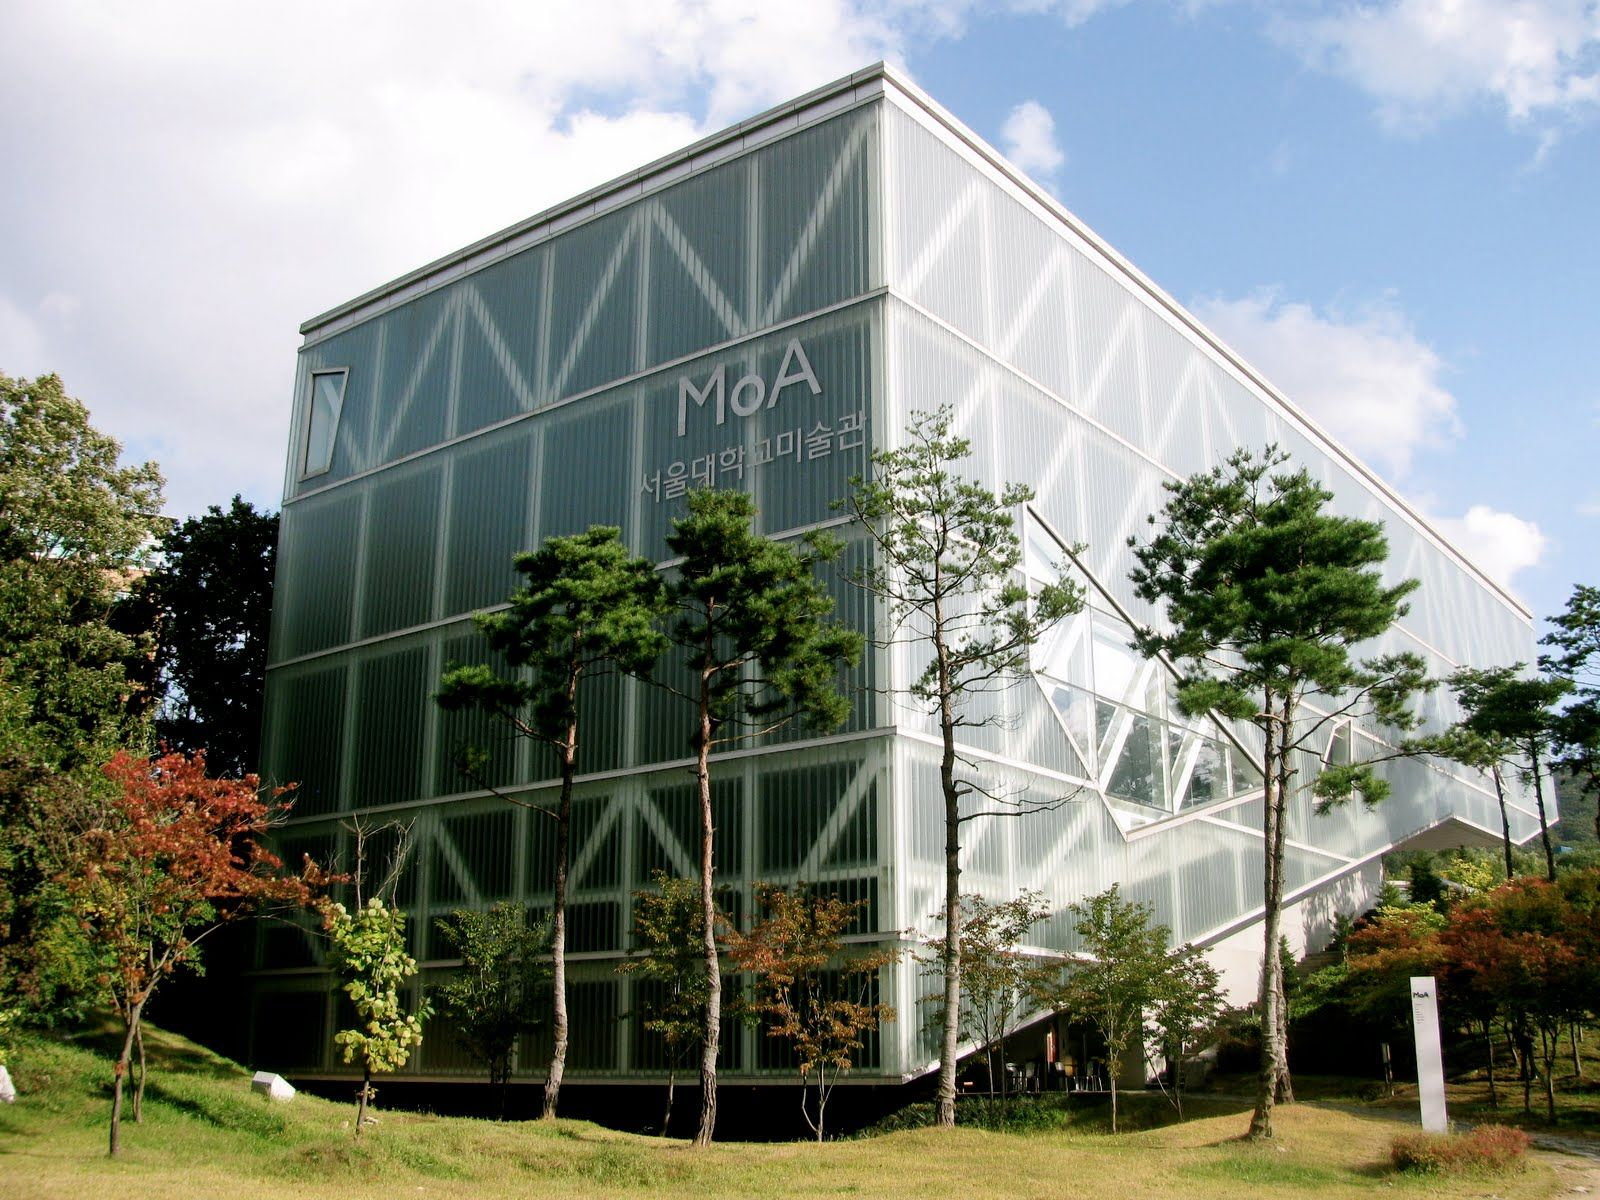 bf7d8e354088a architect-rem-koolhaas-2005-seoul-national-university-museum-of-art- presented-by-the-molly- -claude-team-realtors-ottawa